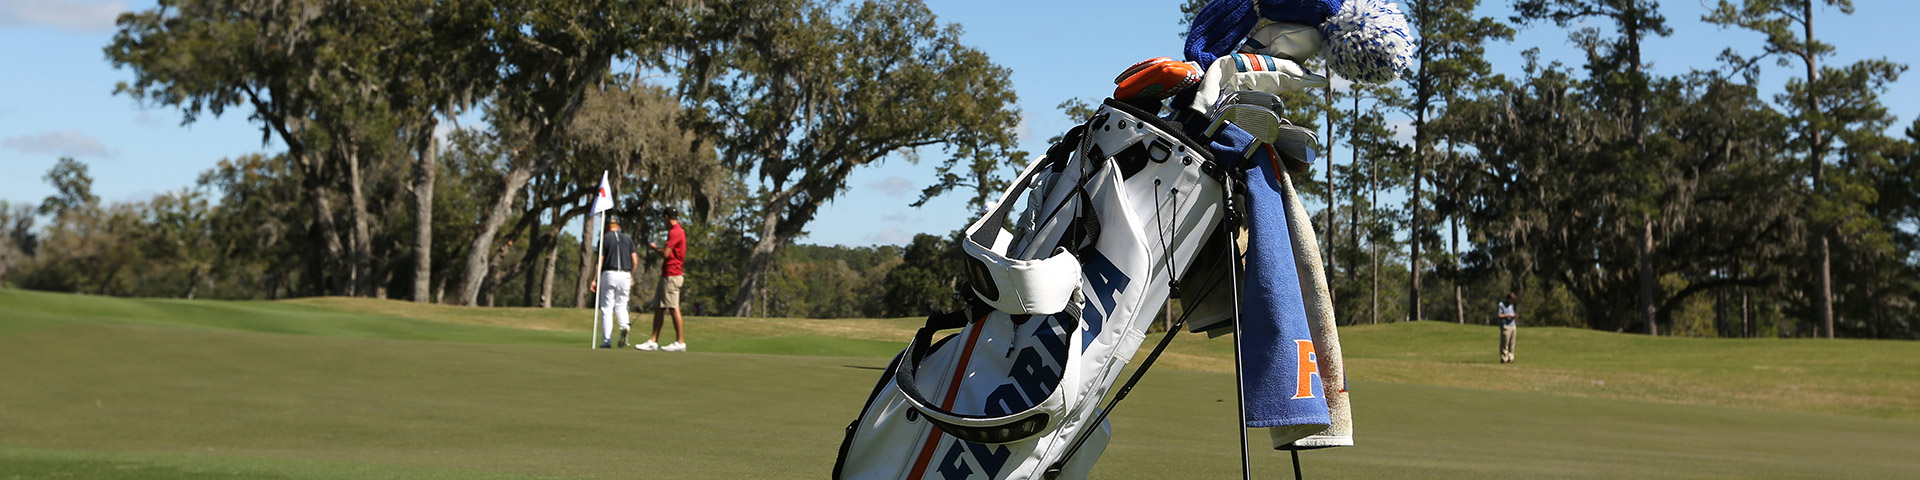 Florida Gators bag sitting on putting green